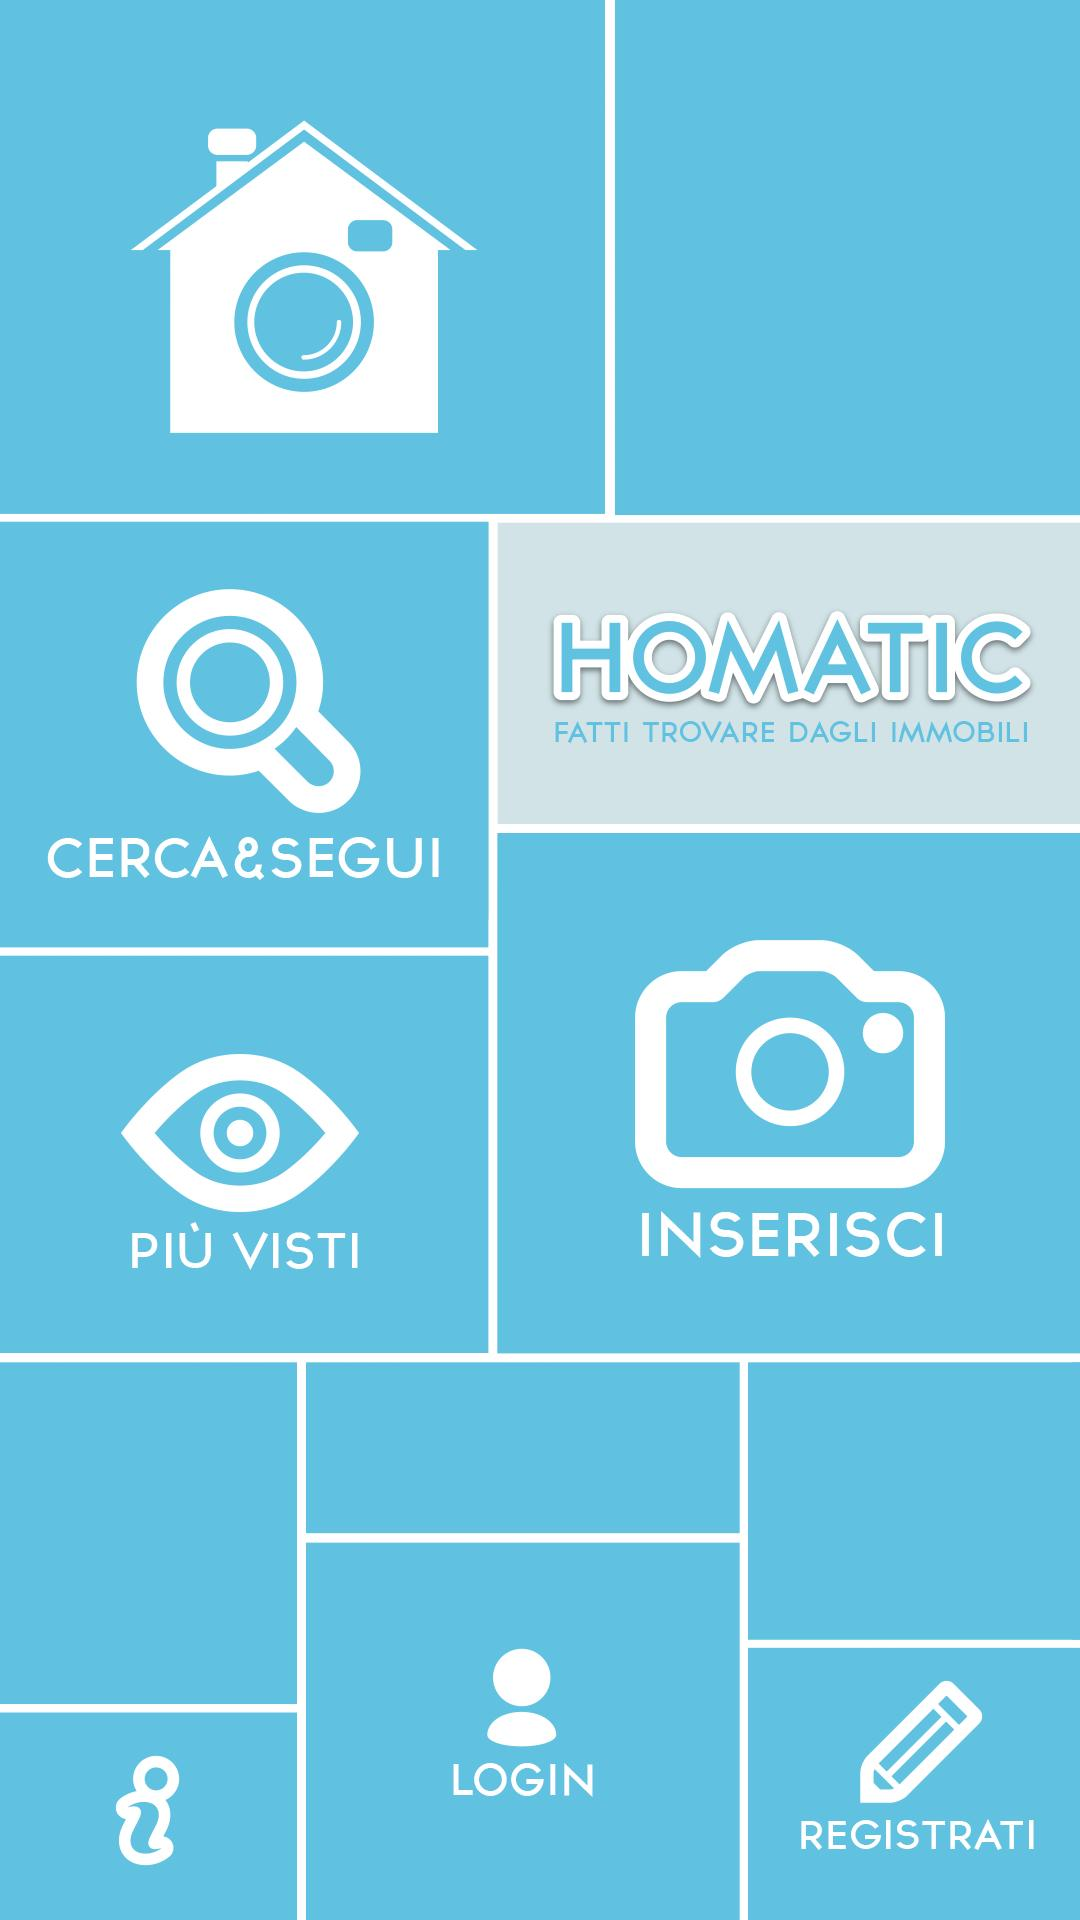 Homatic poster